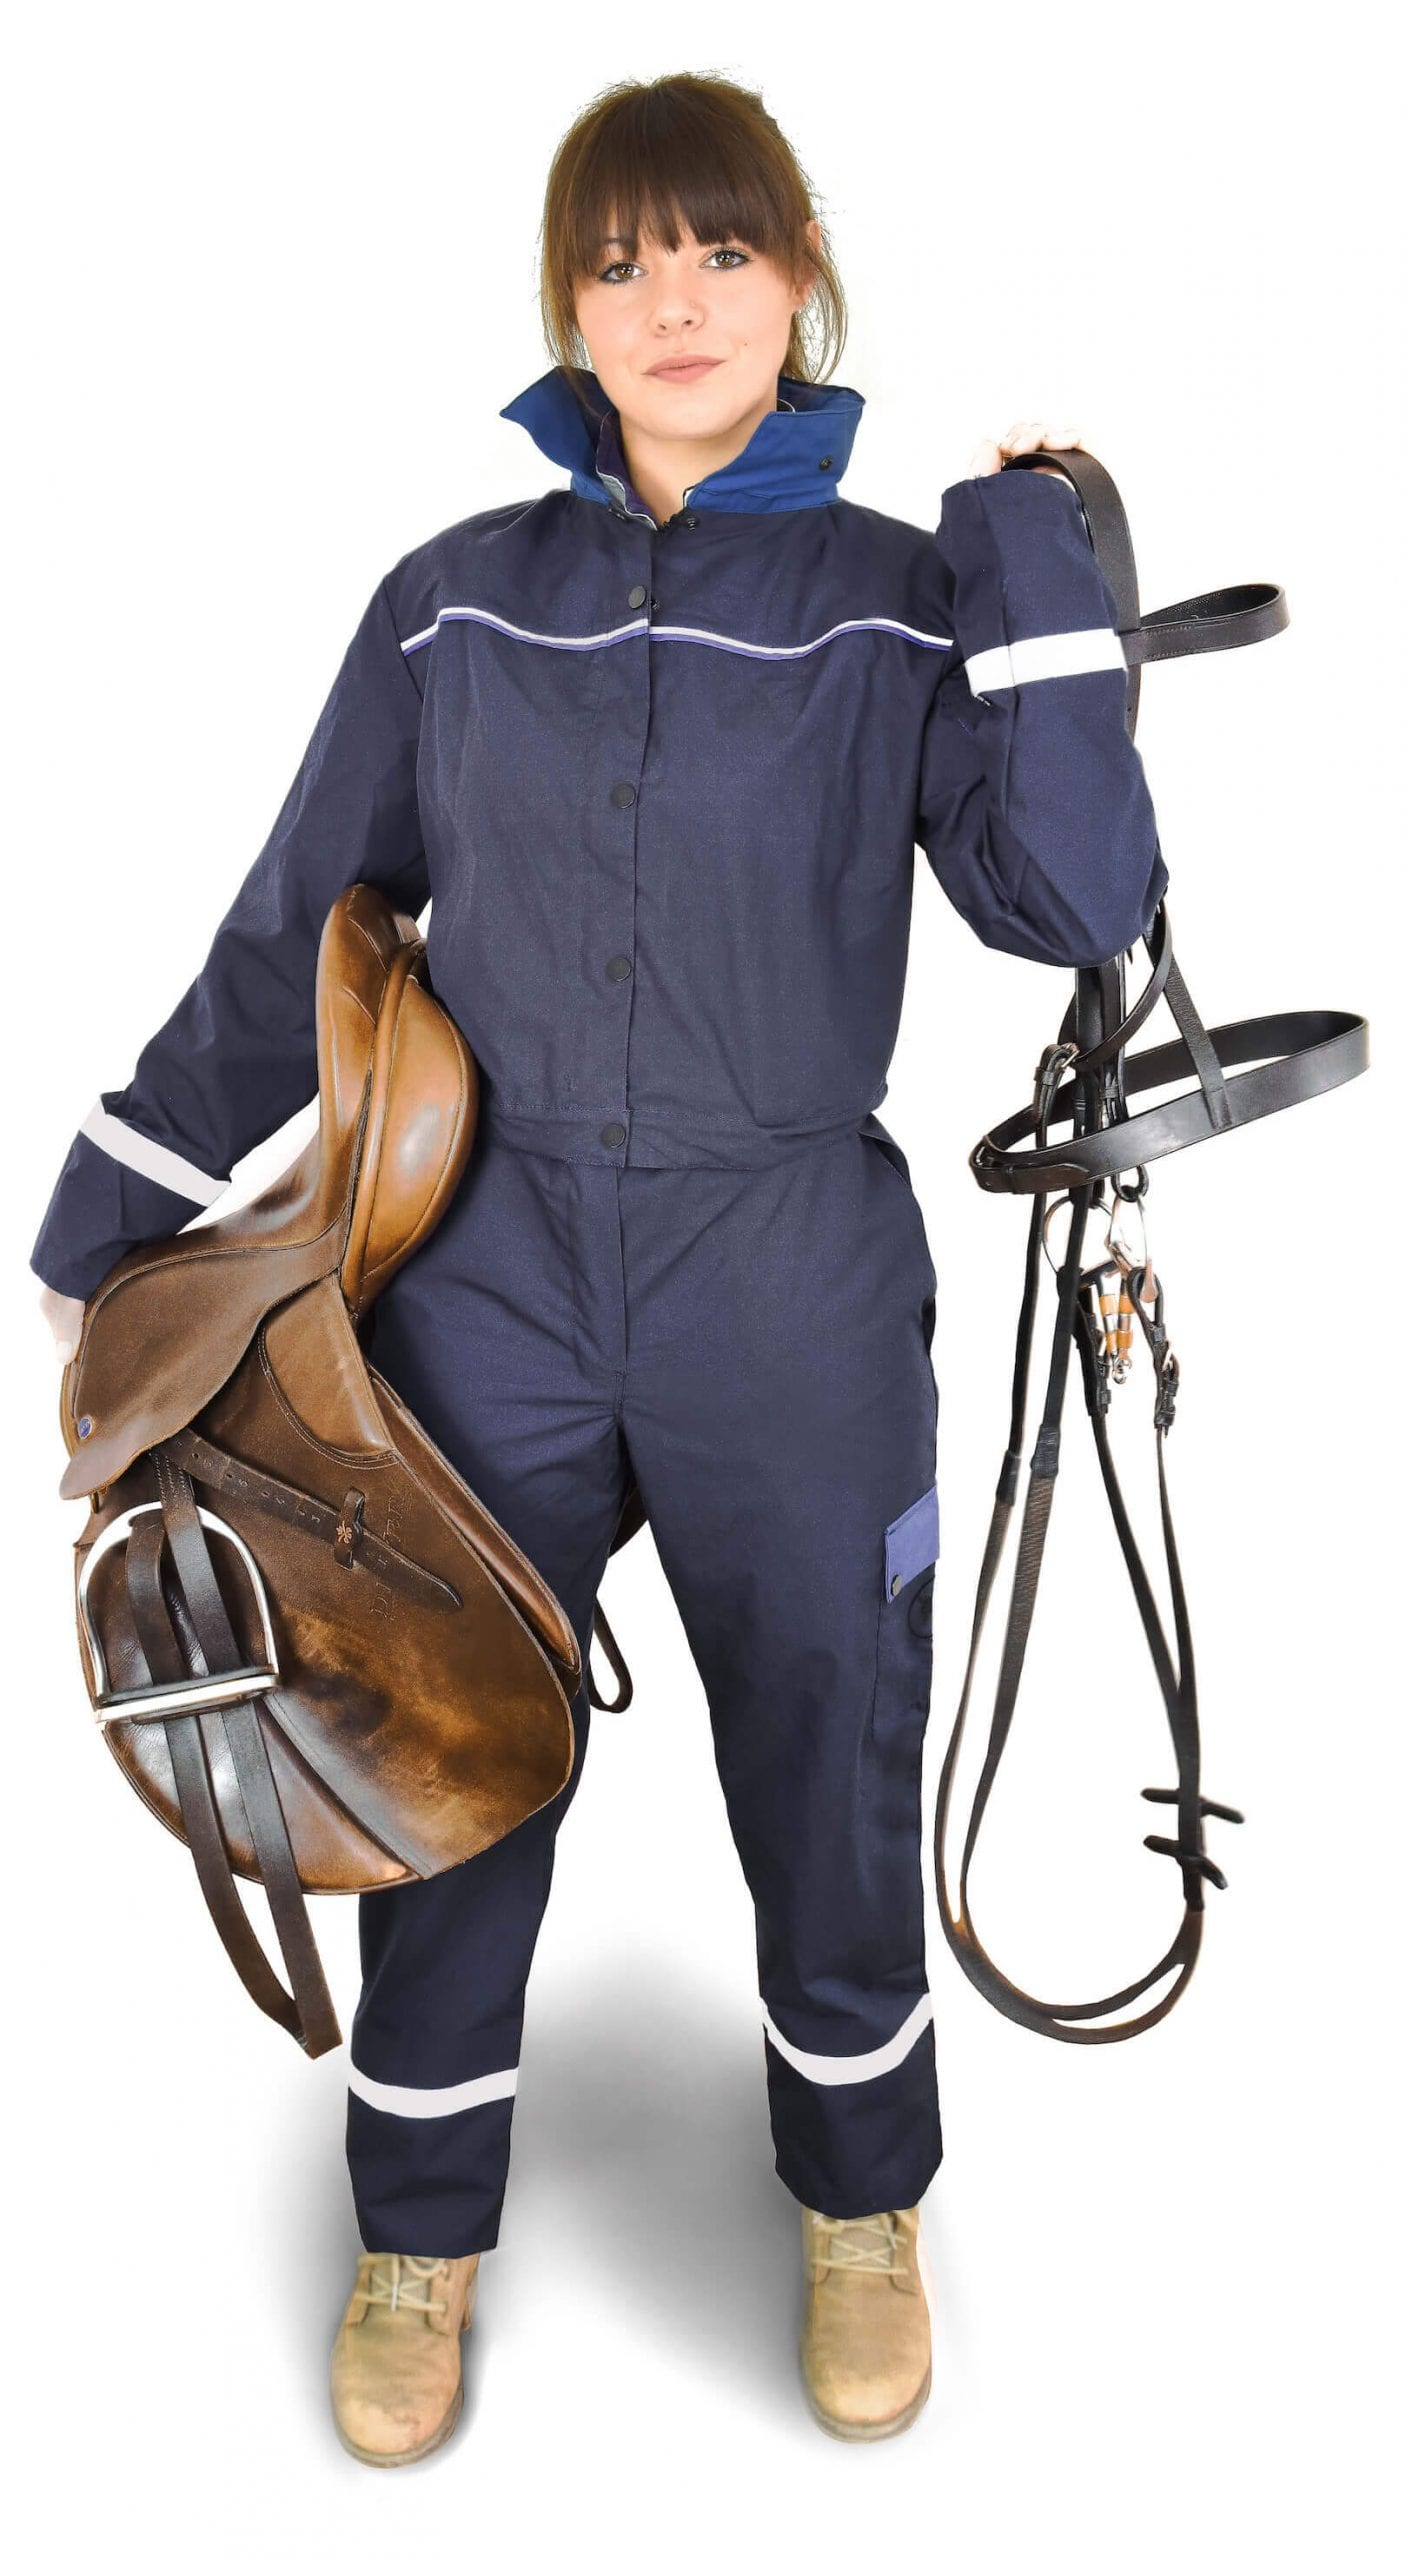 a girl wearing classic blue coverall holding horse saddle and climbing harness